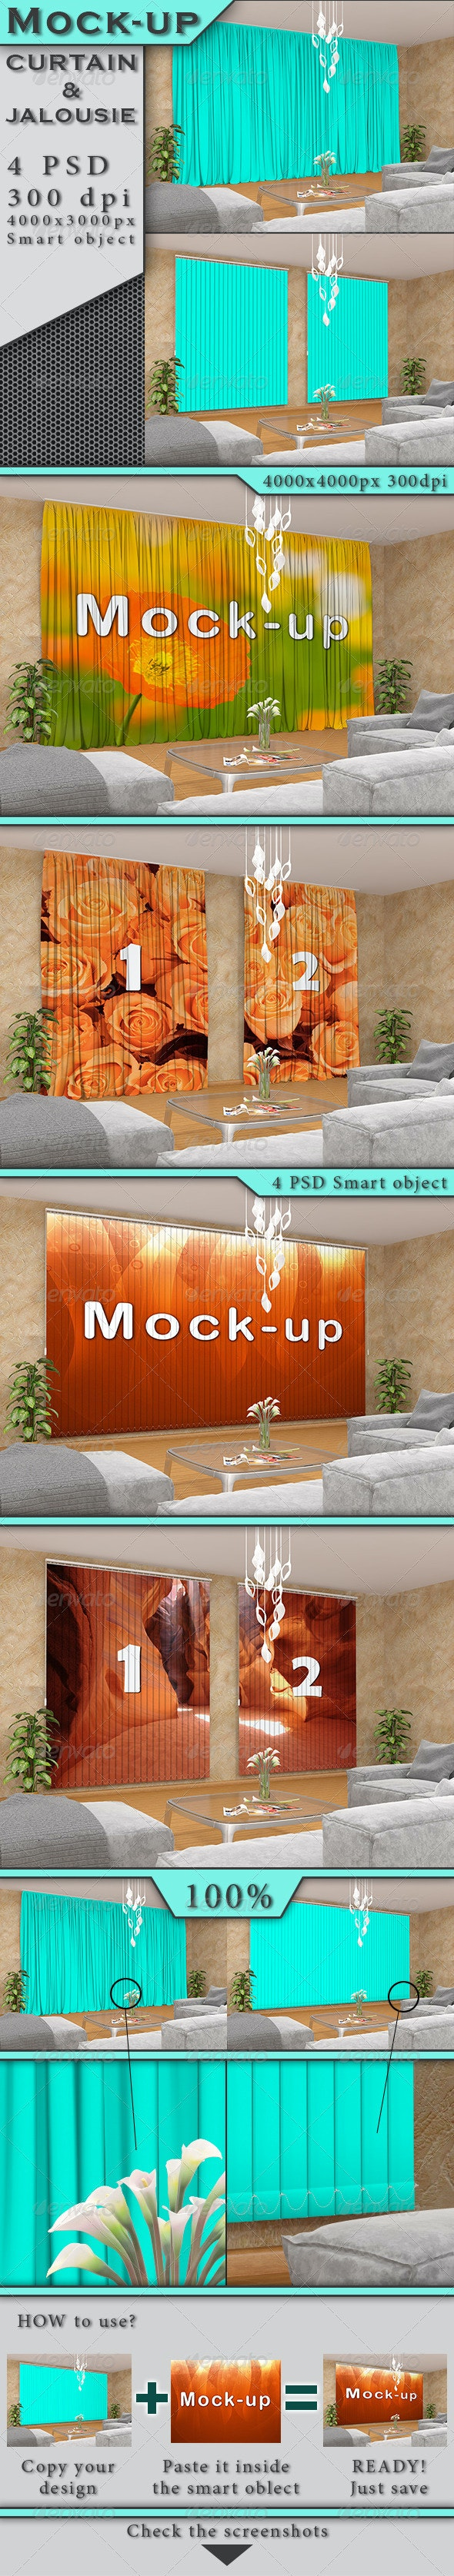 Curtain and Jalousie Mock-up - Miscellaneous Product Mock-Ups